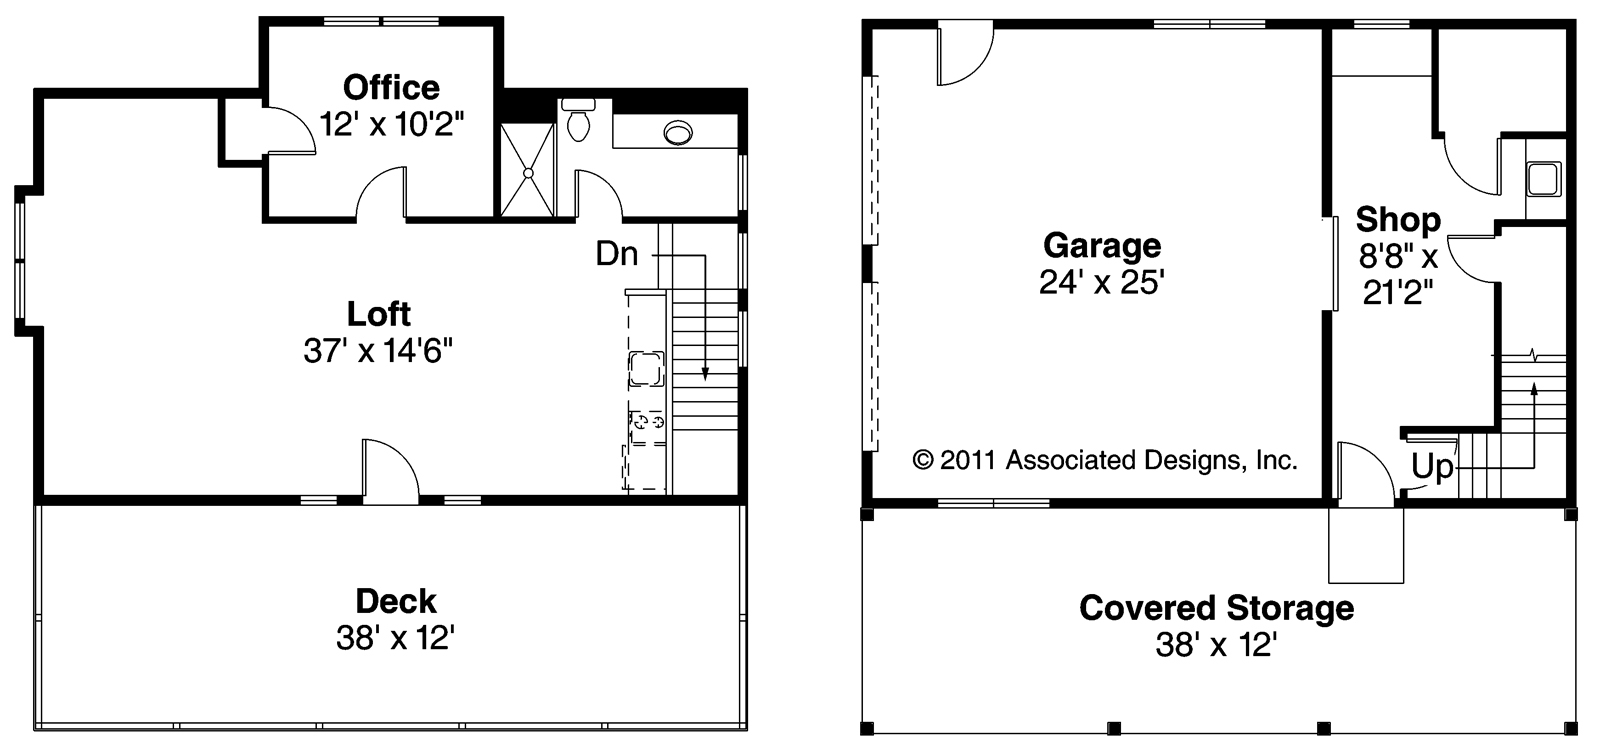 Elwood cool garage floor plans with loft Garage floor plans free